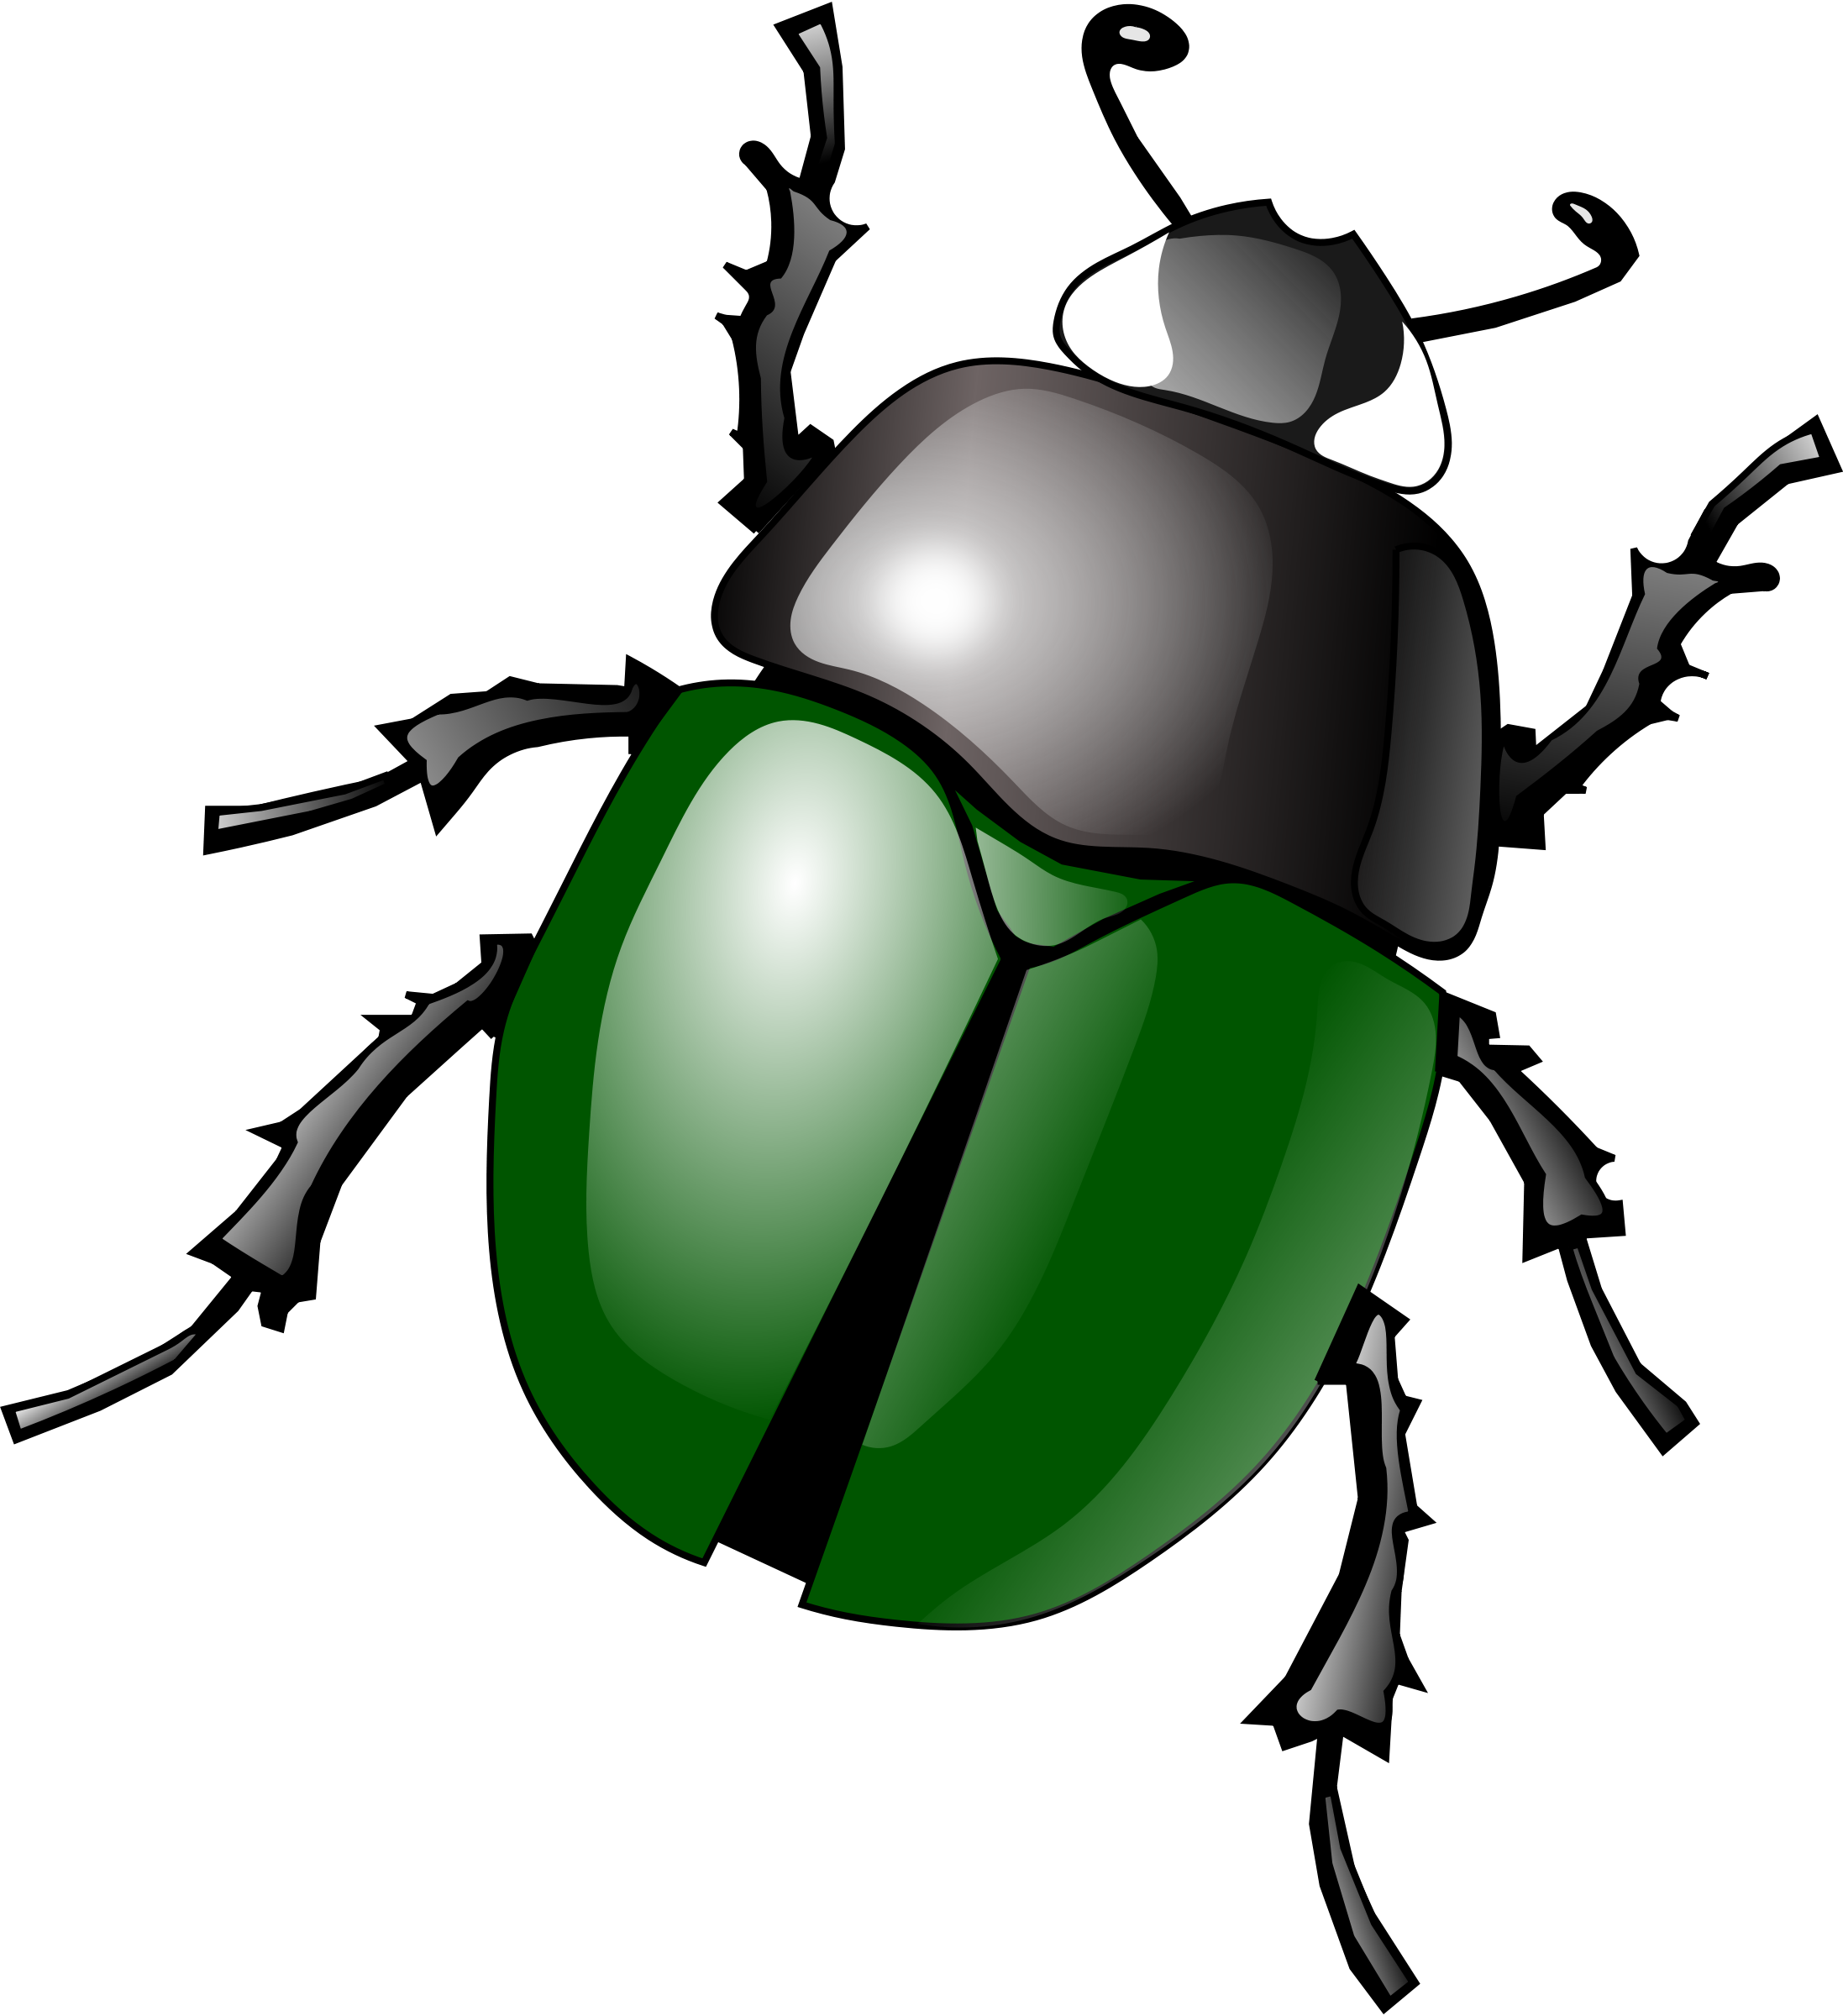 Beetles clipart #13, Download drawings